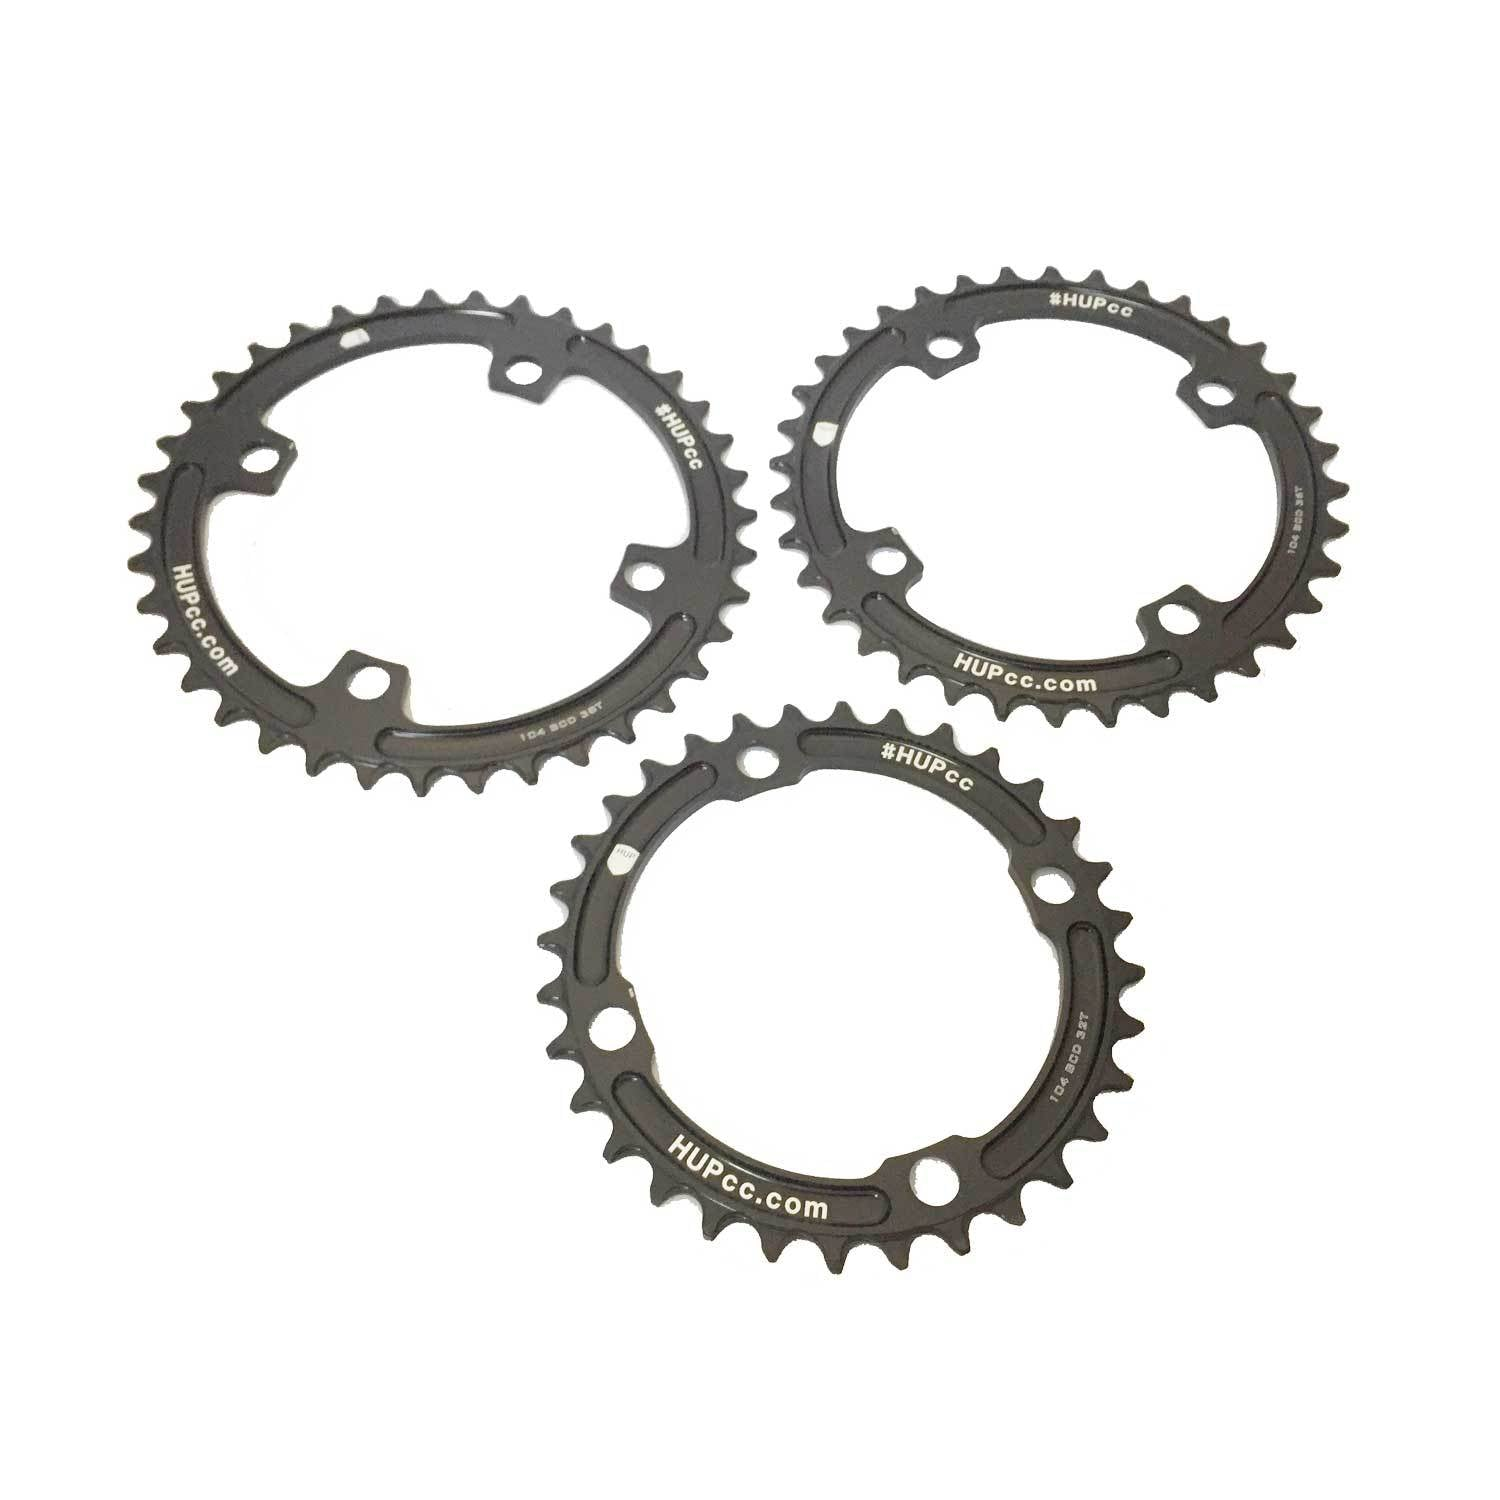 HUP 104bcd 4-Bolt Narrow-Wide Chainring: Kids Road Race/Cyclocross/MTB Race Bikes